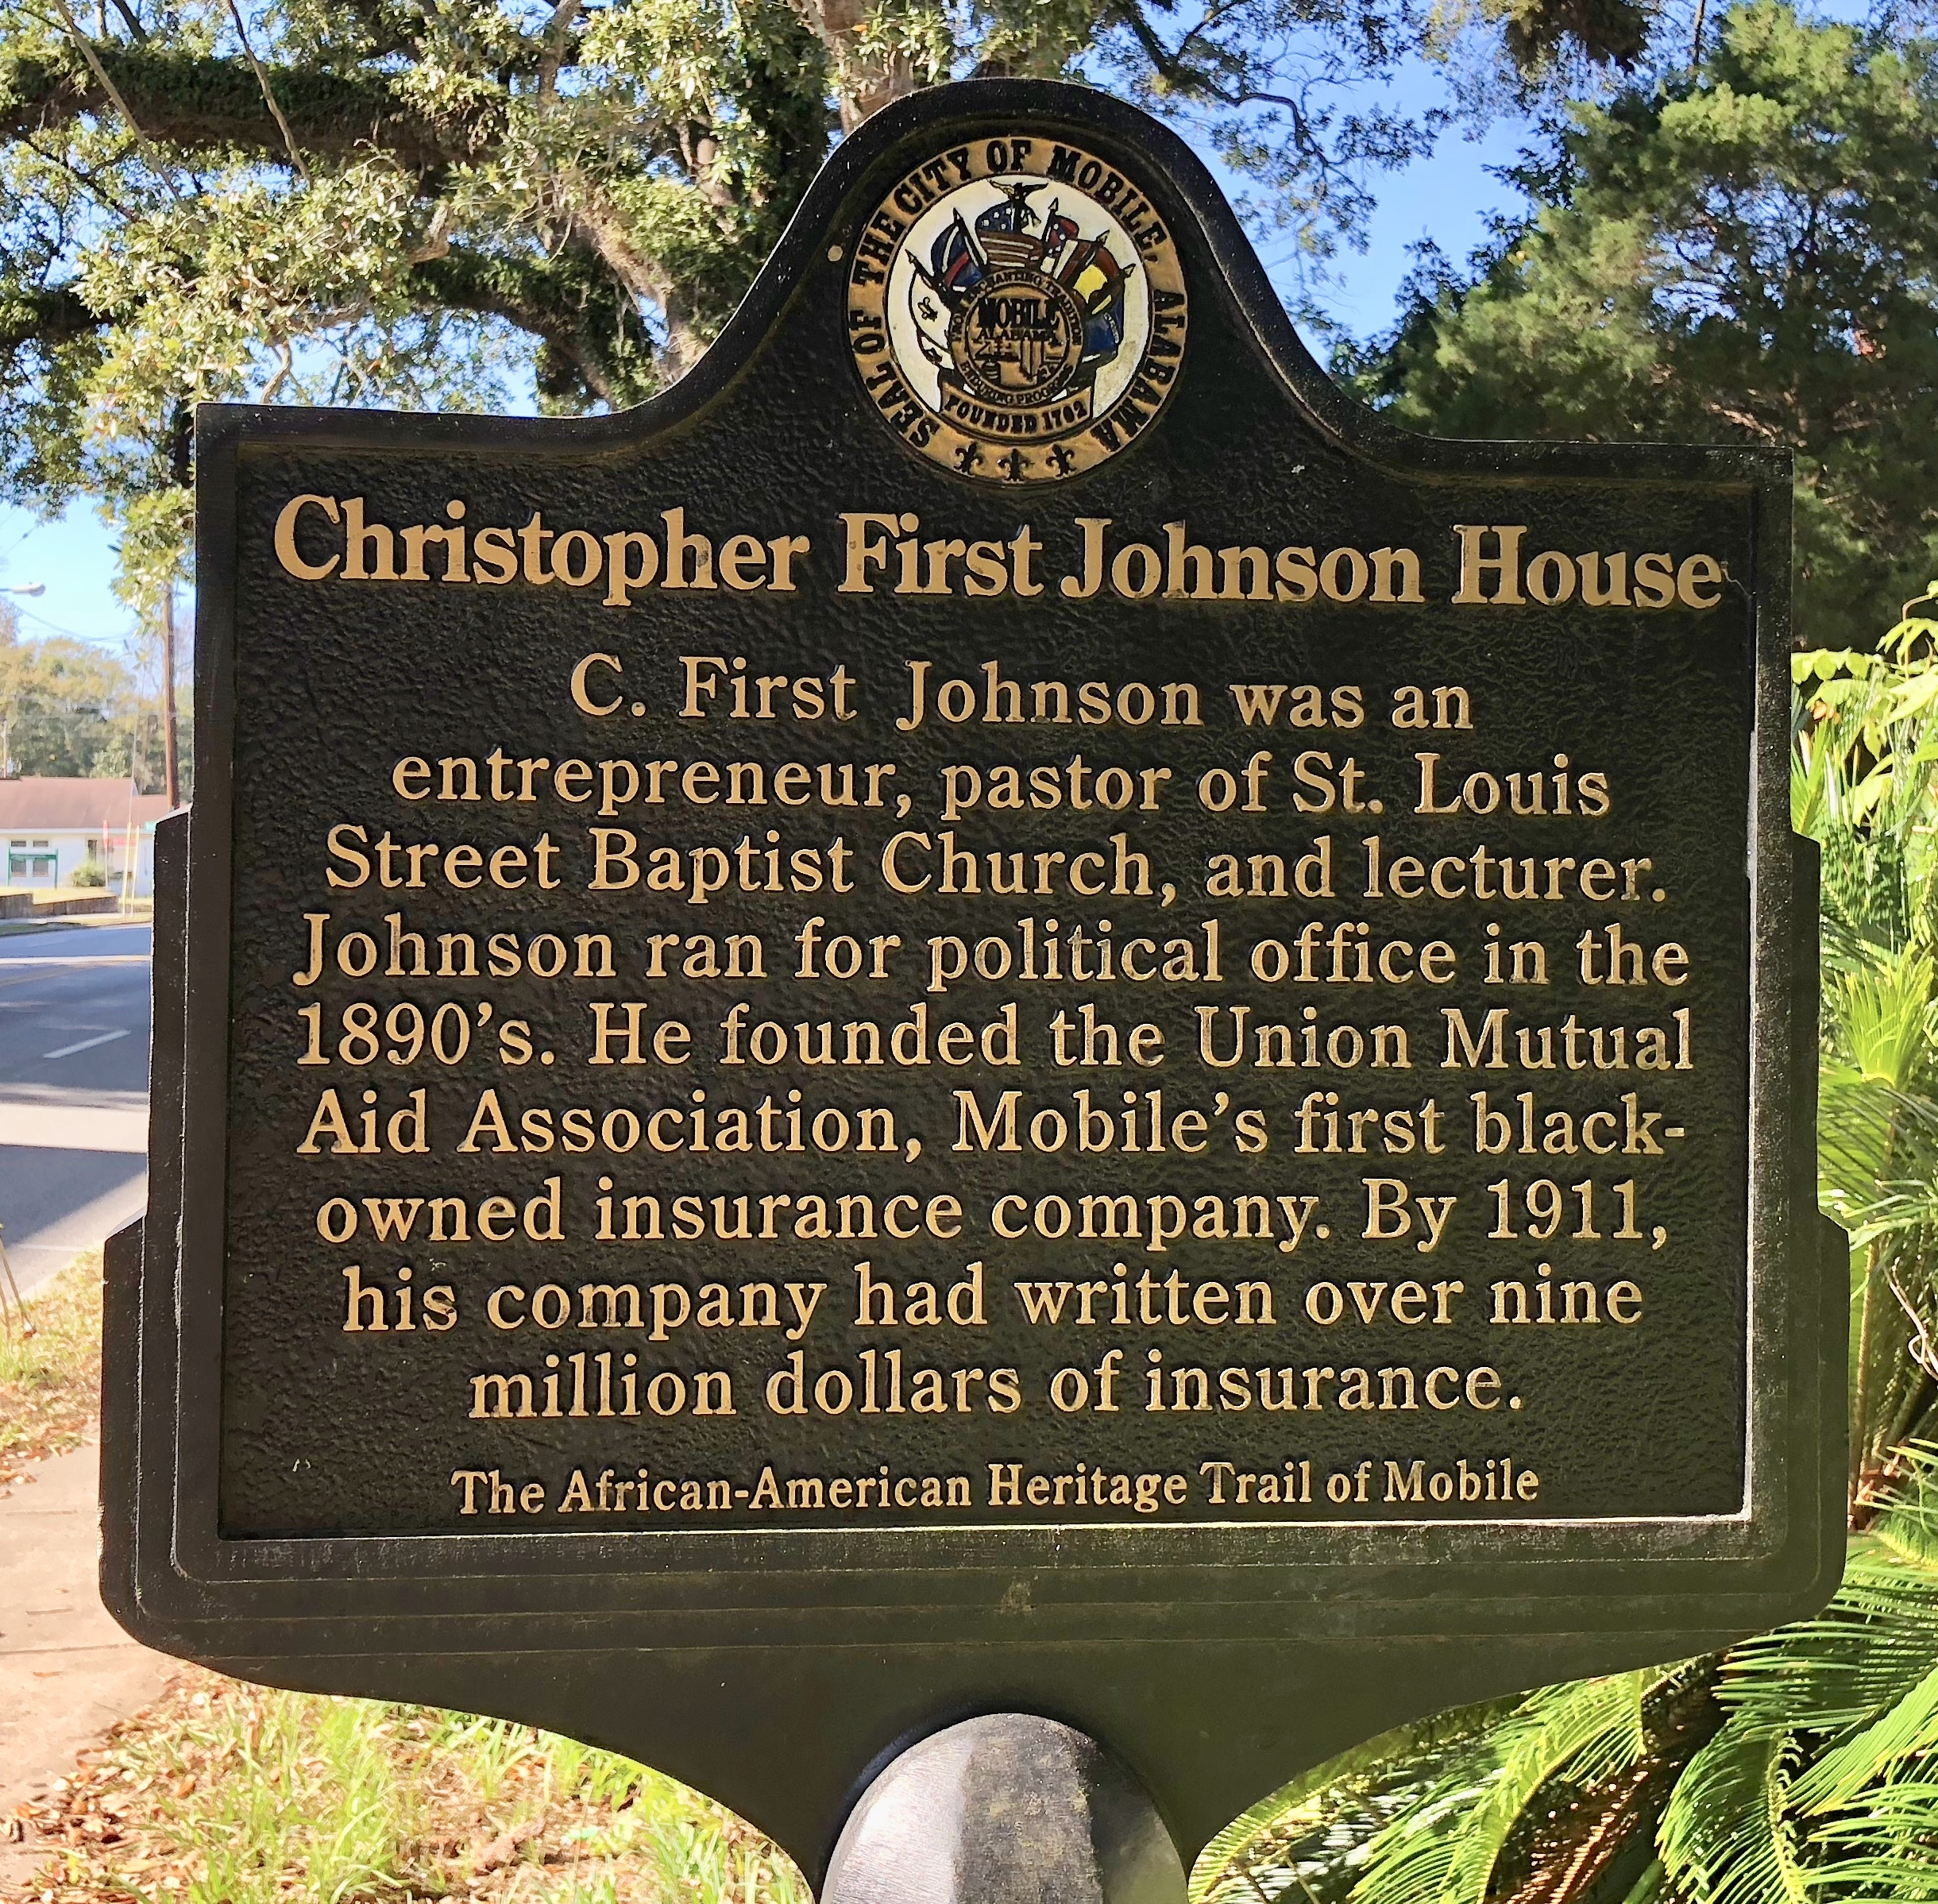 Christopher First Johnson House Marker